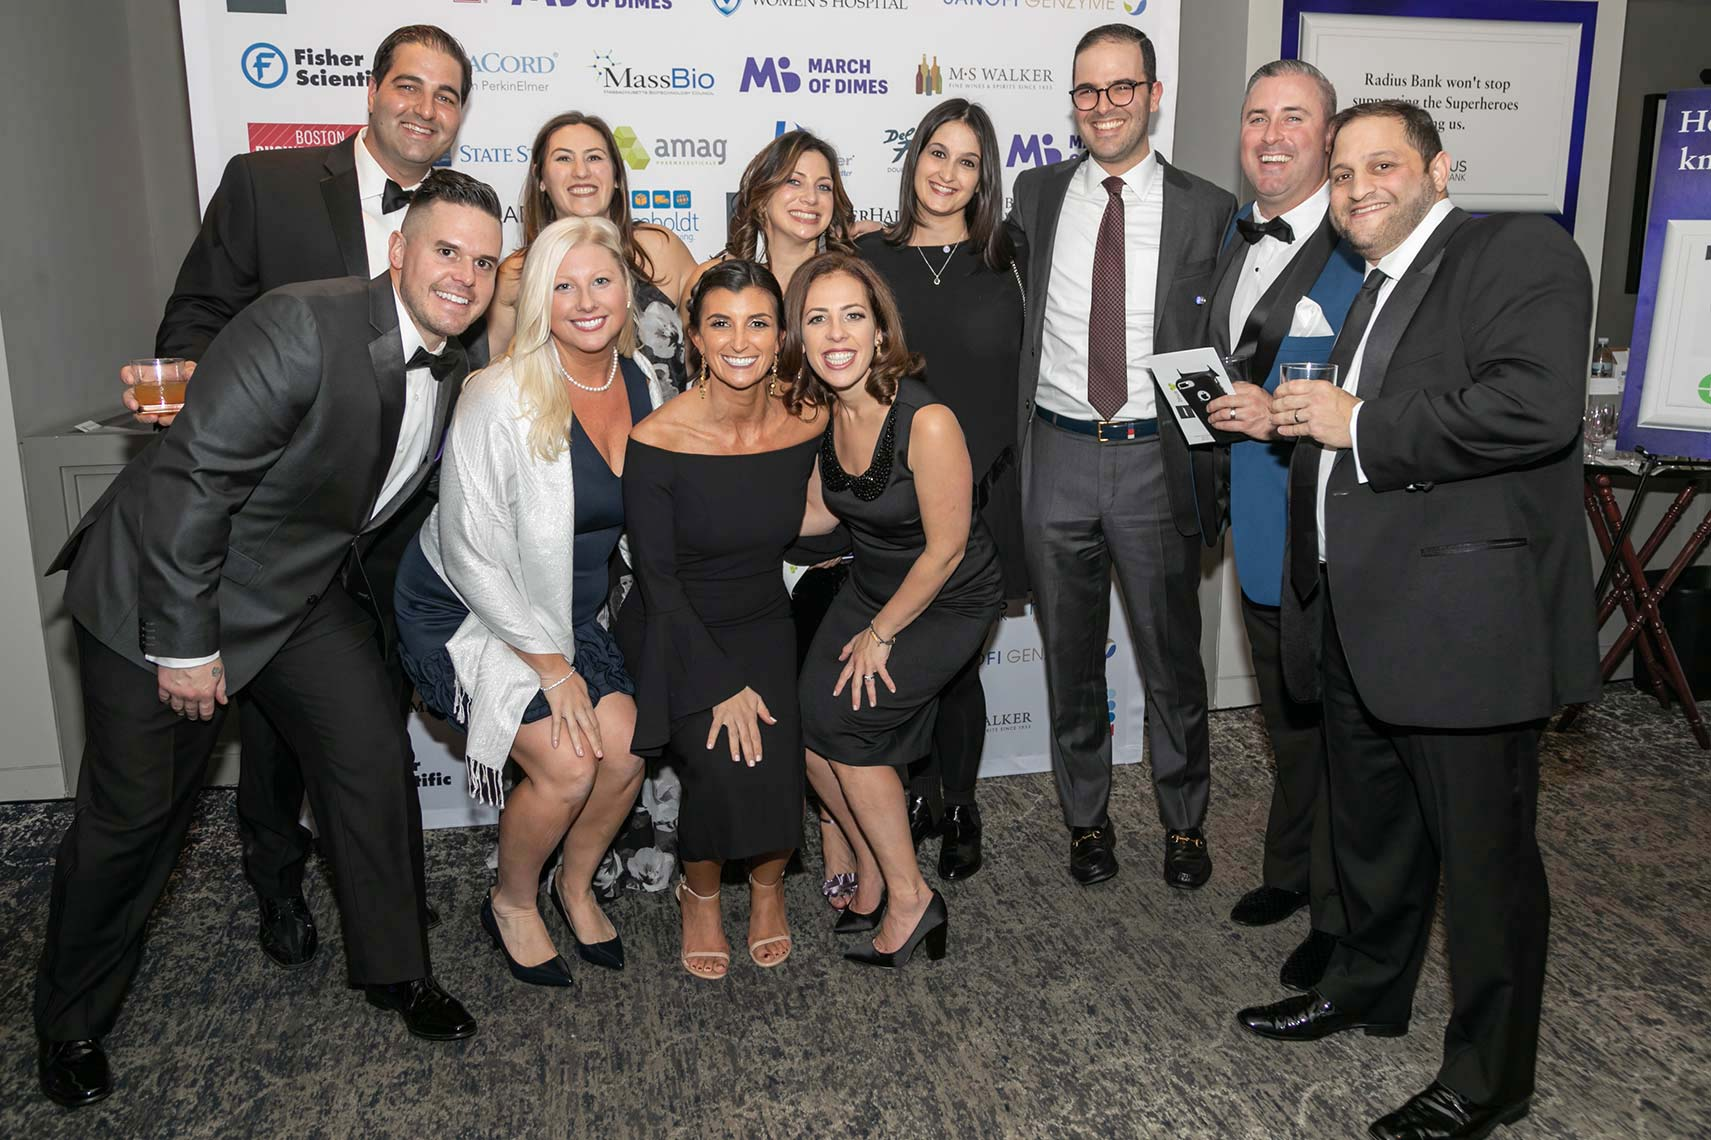 035-Group-photo-of-event-attendees-by-the-step-and-repeat-banner-at-the-March-of-Dimes-gala